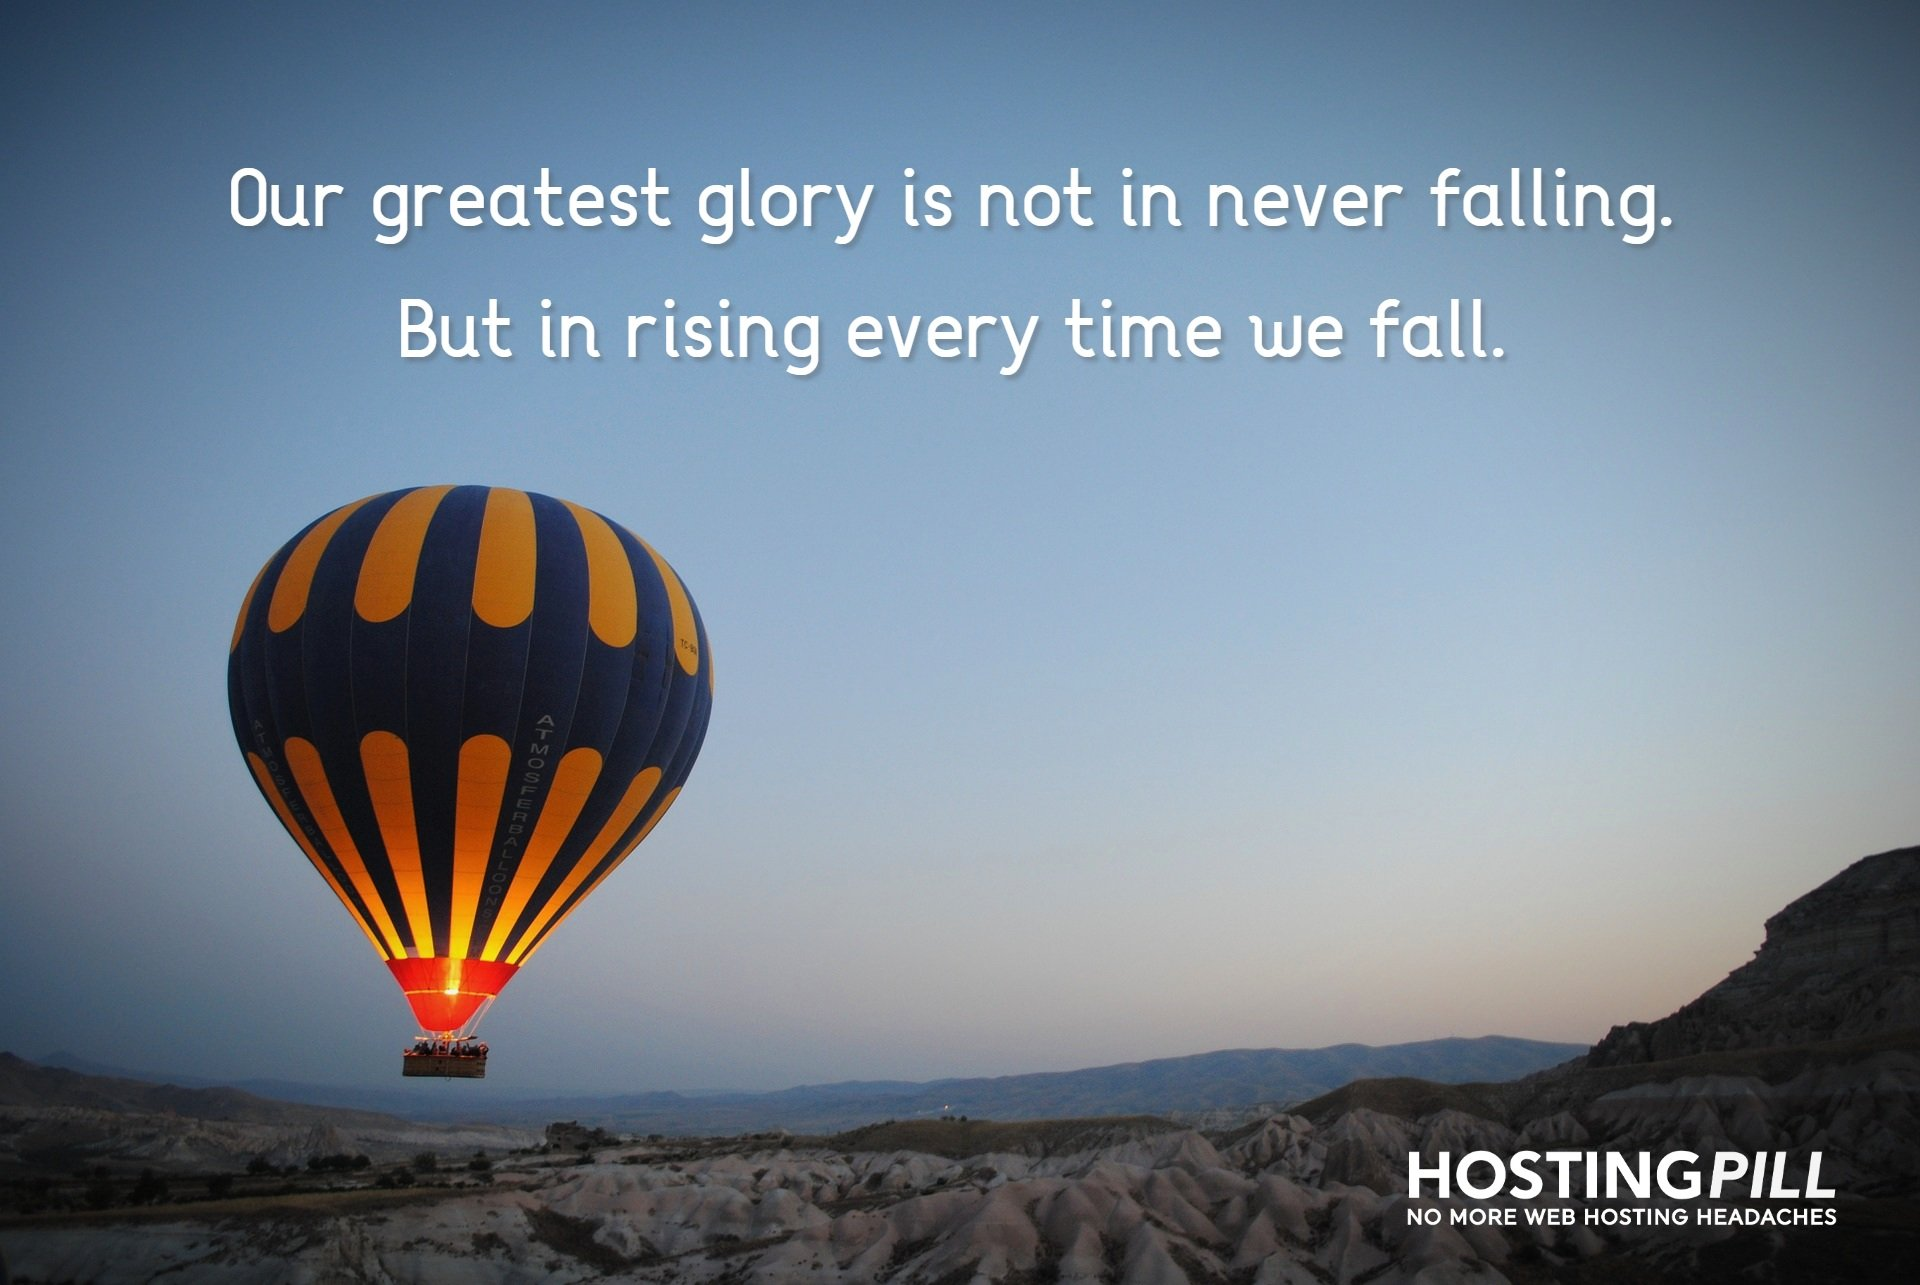 Our greatest glory is not in never falling. But in rising every time we fall.